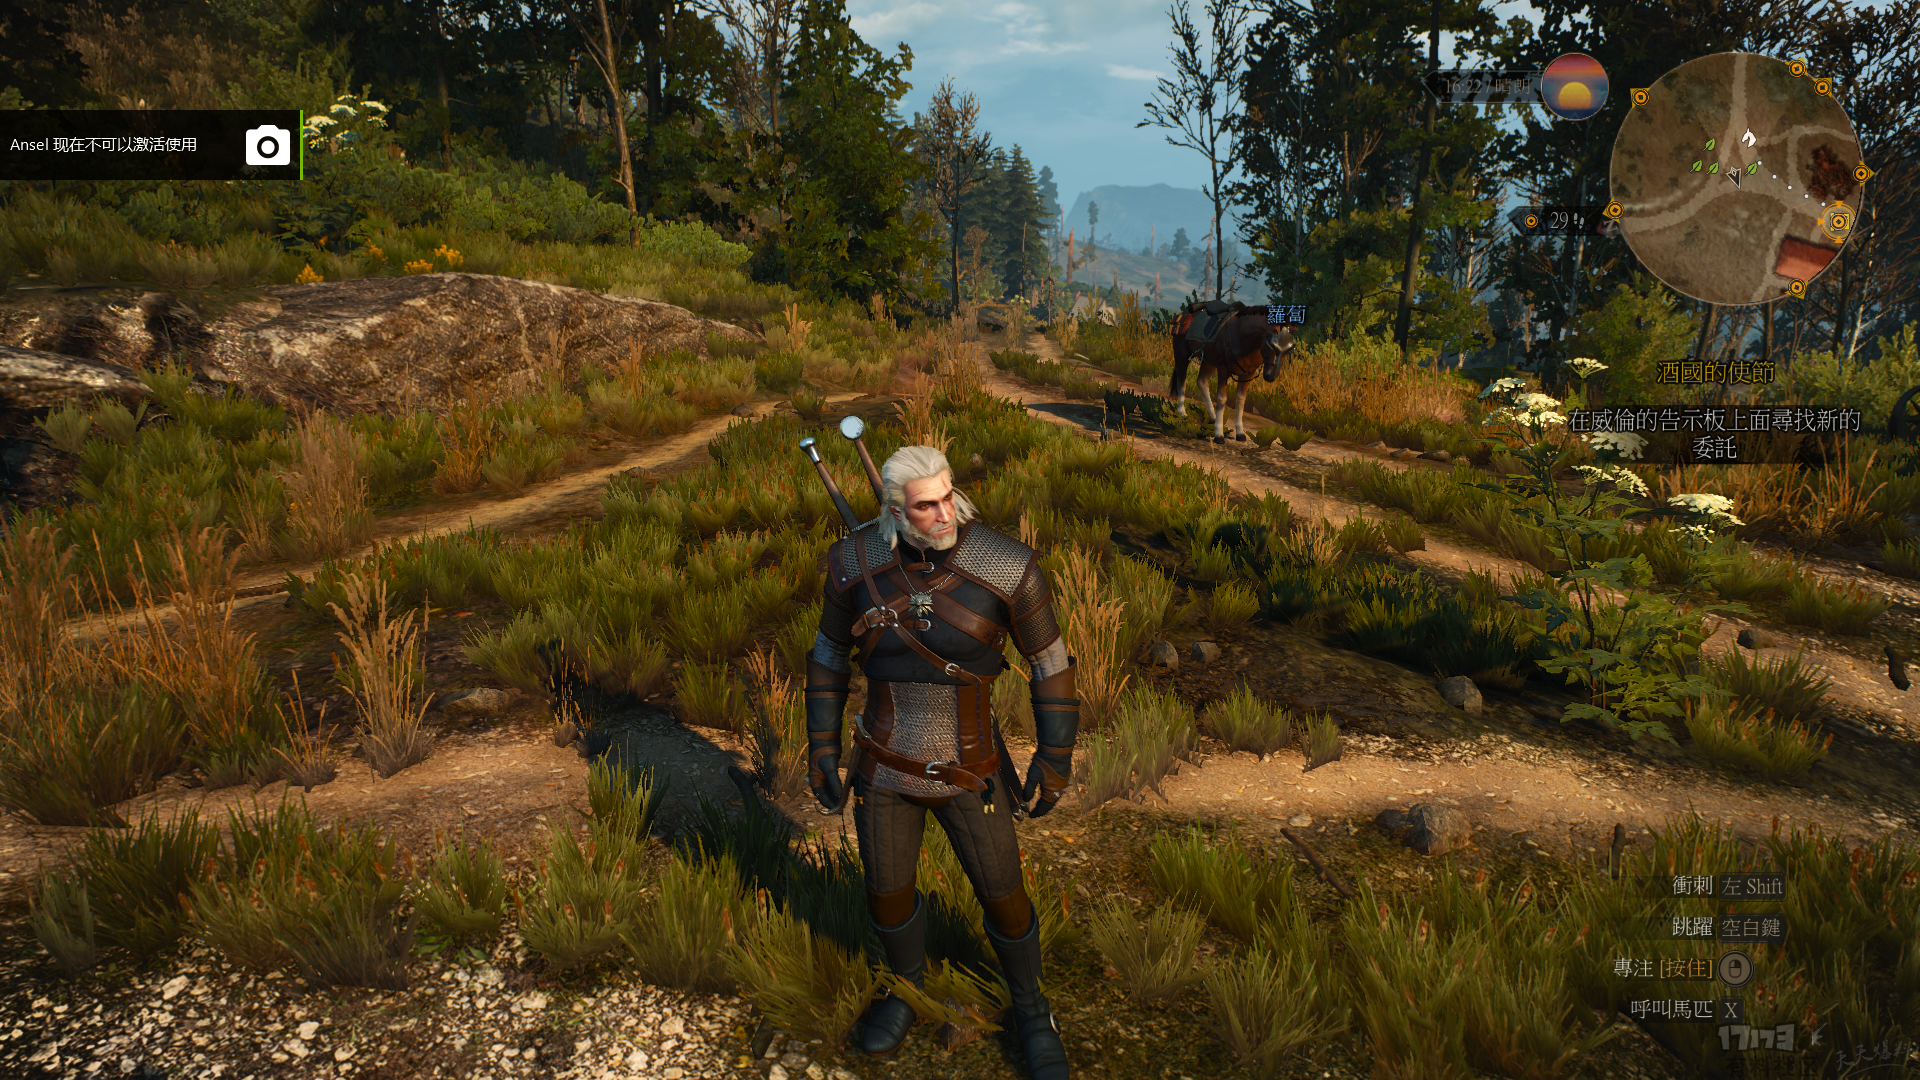 The Witcher 3 Screenshot 2018.04.20 - 22.38.33.45.png